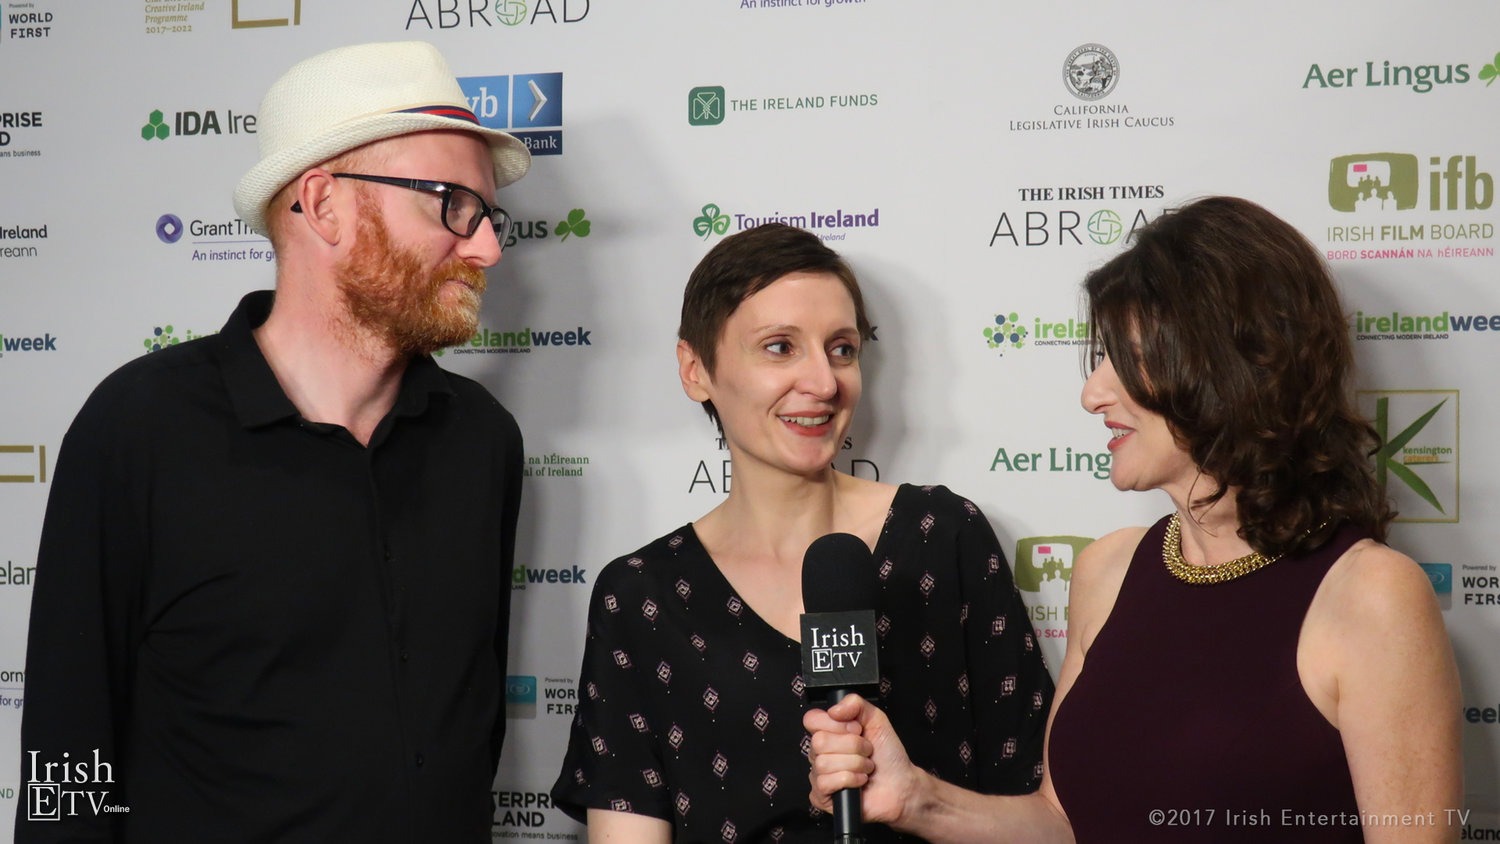 Paul Young and Nora Twomey, Co-Founders of Cartoon Saloon, chat with